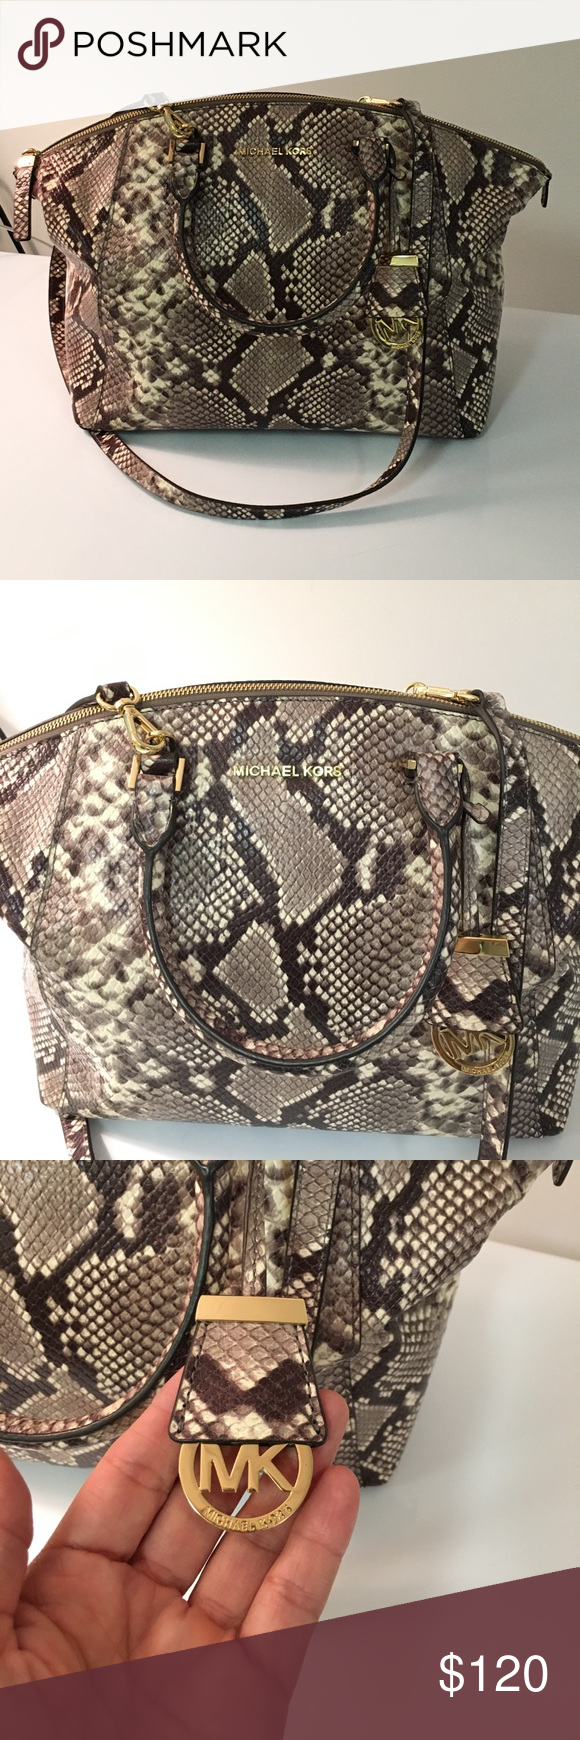 64678fc8b23e Michael Kors Riley Python Satchel This Michael Kors Riley Python Satchel is  a classic beauty. Color tones are browns and cream with gold hardware.